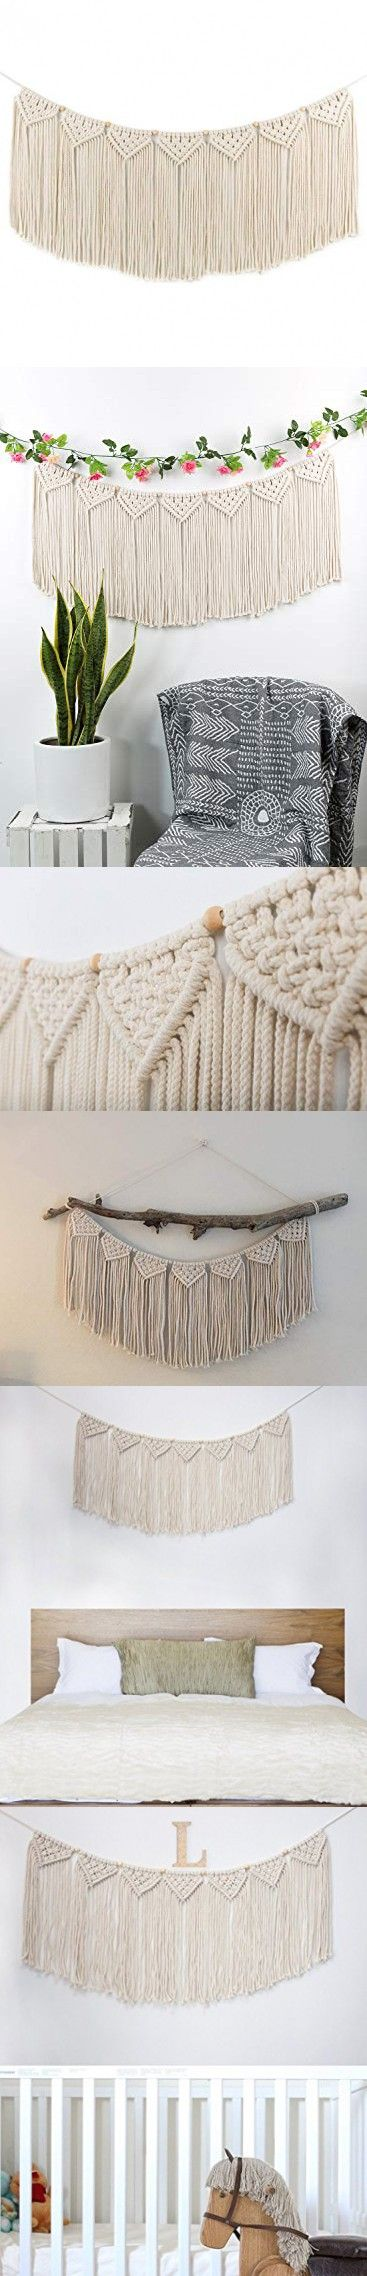 Macrame Woven Wall Hanging Curtain Fringe Garland Banner - BOHO Shabby Chic Bohemian Wall Decor - Apartment Dorm Living Room Bedroom Baby Nursery Art - Party Backdrop Decoration, 15W x35L, 7 flags #curtainfringe